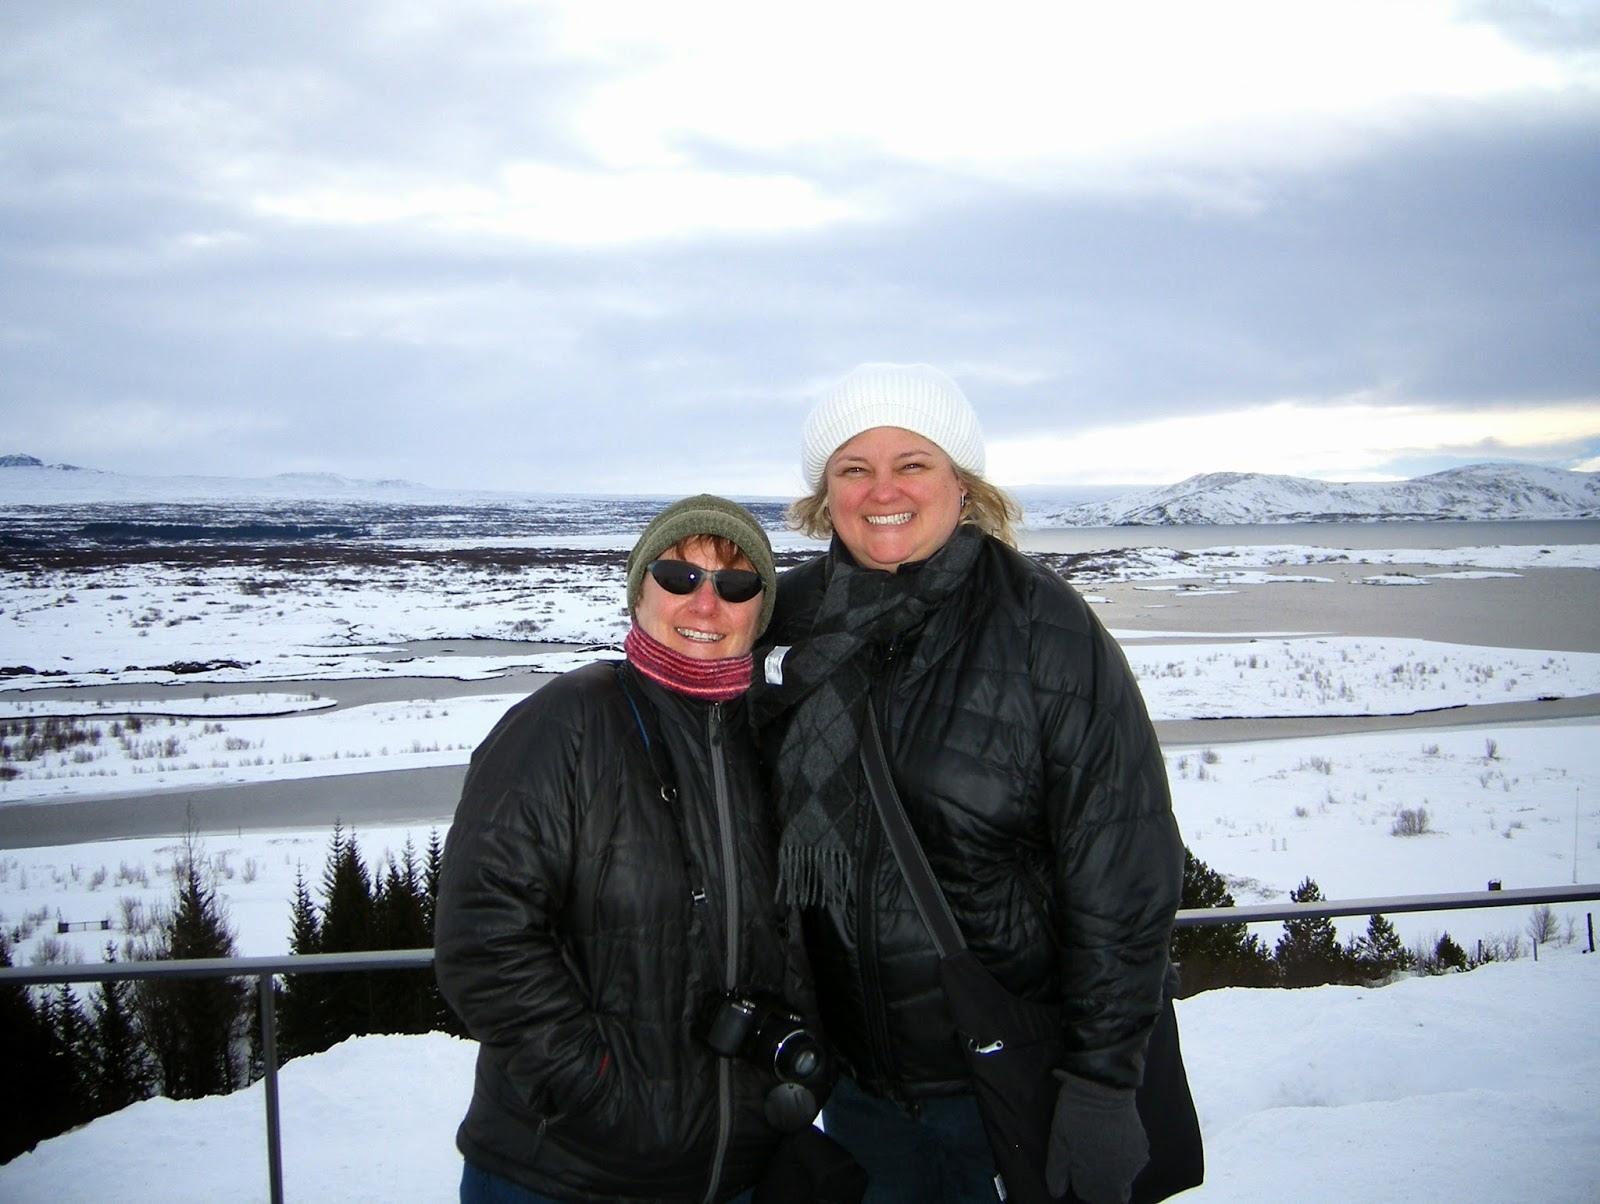 Kristina and Jille vacationing in Iceland - Patricia Stimac, Seattle Wedding Officiant